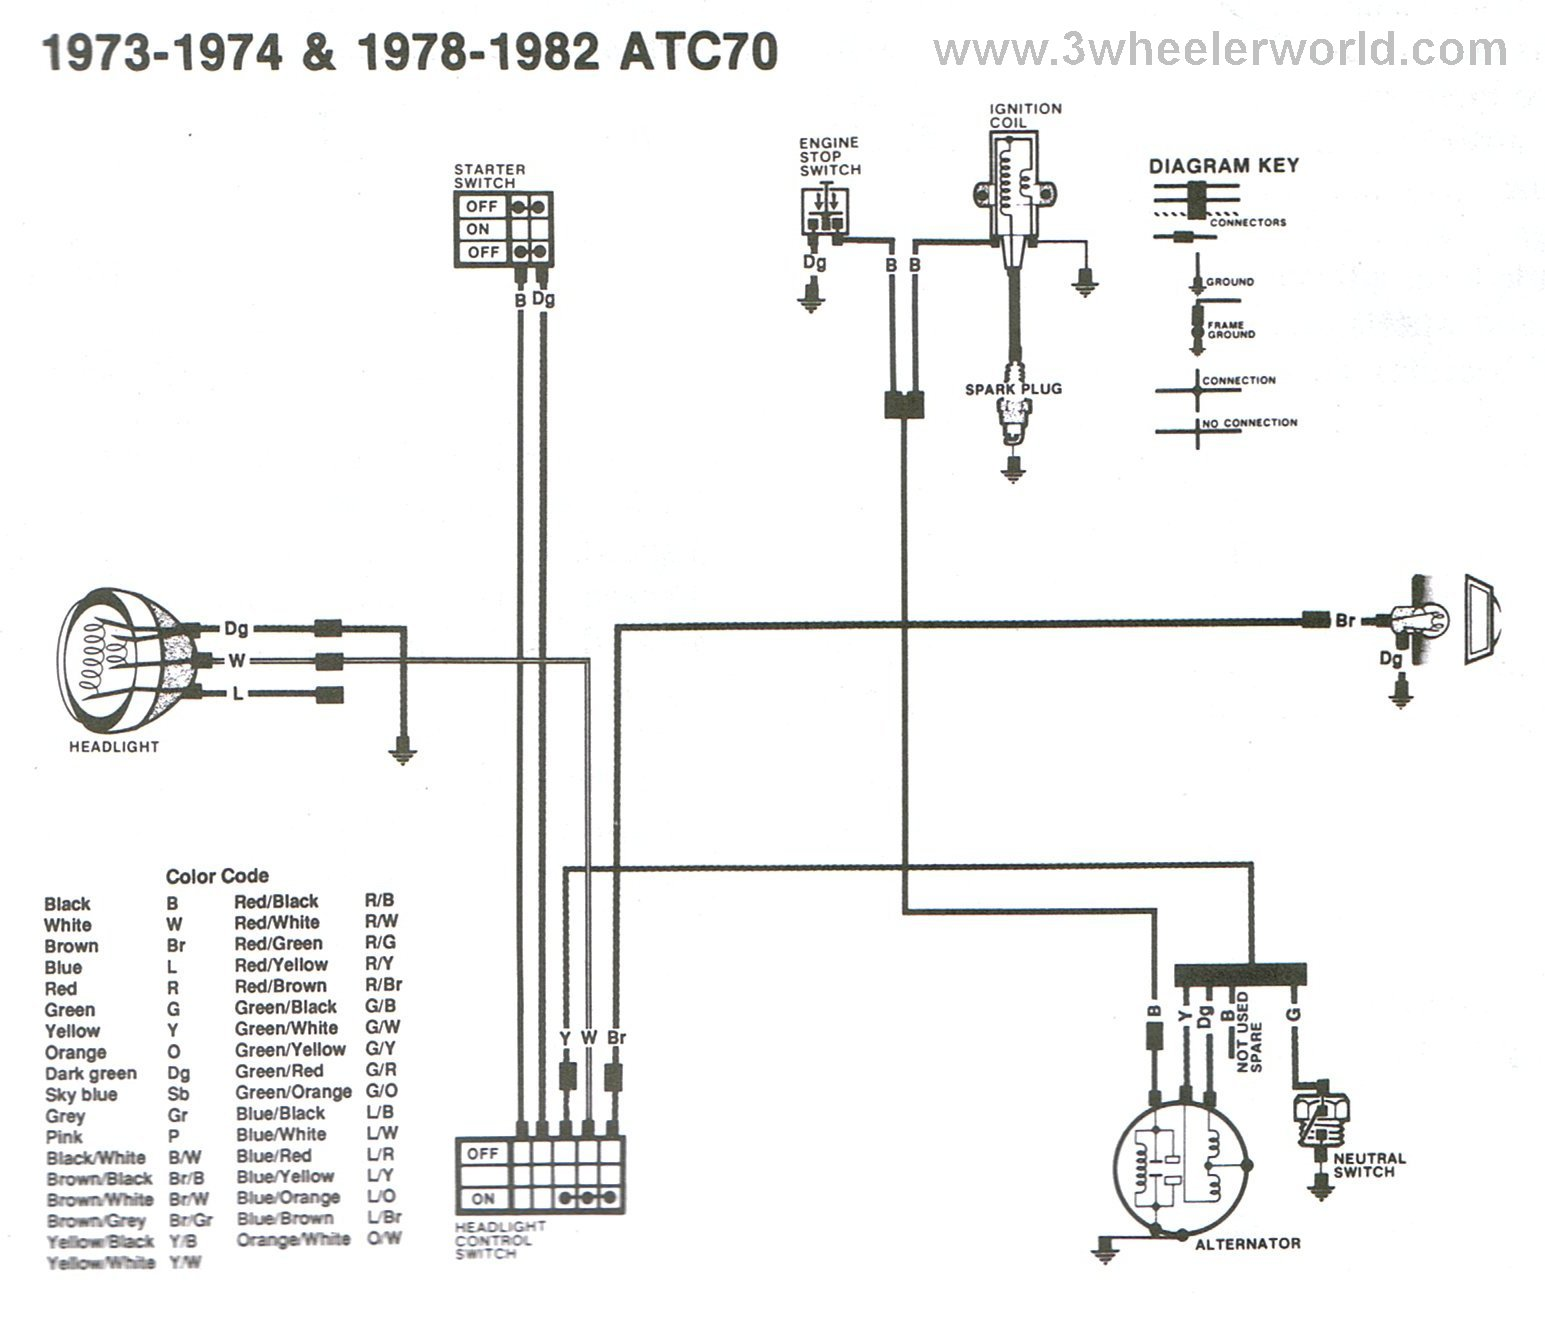 Honda Atc 200 Wiring Diagram | Wiring Diagram on honda c70 wiring-diagram, honda motorcycle gearbox, honda c 200 wiring diagram, honda motorcycle carb diagrams, honda cb350 wiring-diagram, honda cb750 wiring-diagram, honda 90 ignition wiring diagram, honda cb550 wiring-diagram, honda chopper wiring diagram, honda motorcycle transmission, honda rancher wiring-diagram, honda motorcycle fuse, honda sl70 wiring-diagram, honda wiring harness diagram, honda vtx wiring-diagram, honda motorcycle fuel system, honda crf50 wiring diagram, honda xr 250 wiring diagram, honda elite wiring-diagram, honda motorcycle ignition,